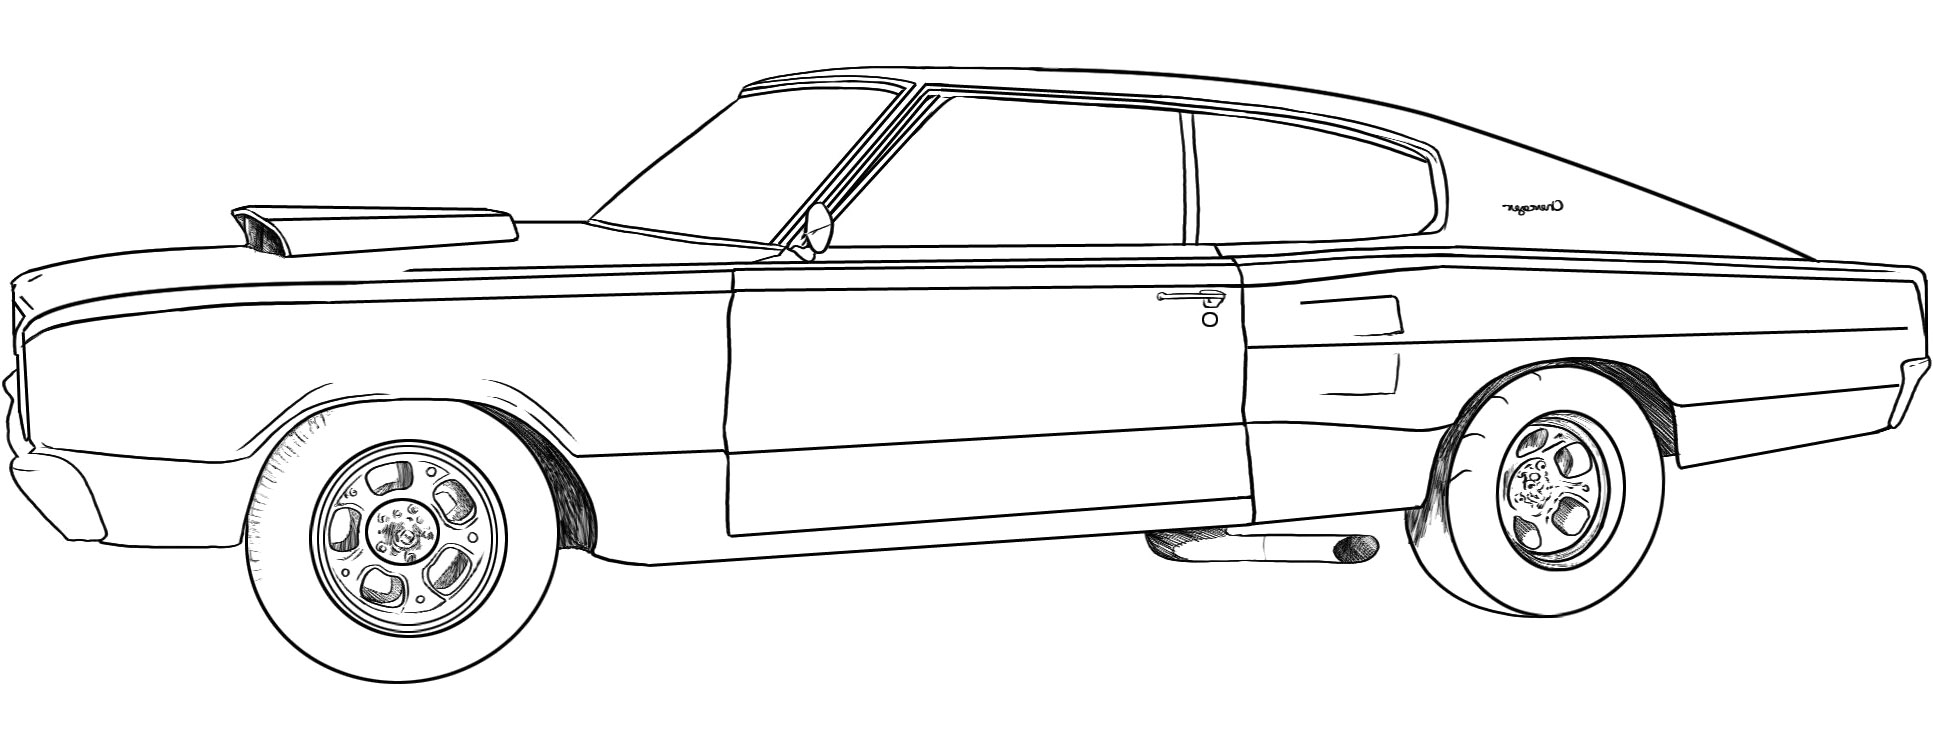 dodge challenger coloring page | Only Coloring Pages